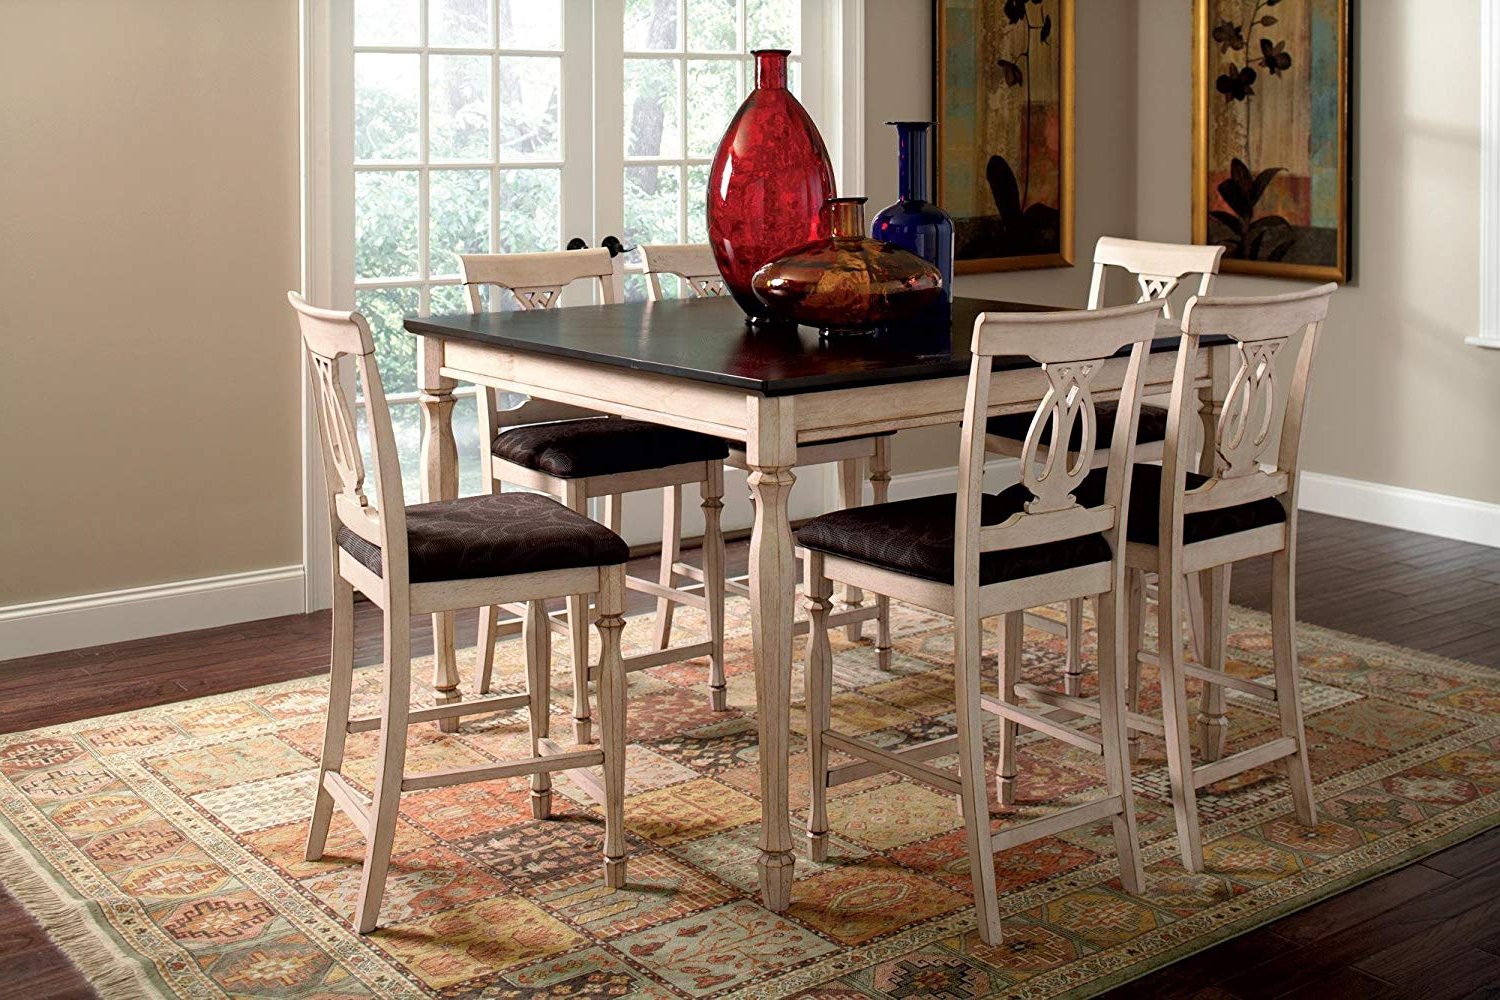 Popular Transitional Antique Walnut Square Casual Dining Tables Intended For Coaster Home Furnishings Transitional Counter Height Table, Antique White And Merlot (View 14 of 30)